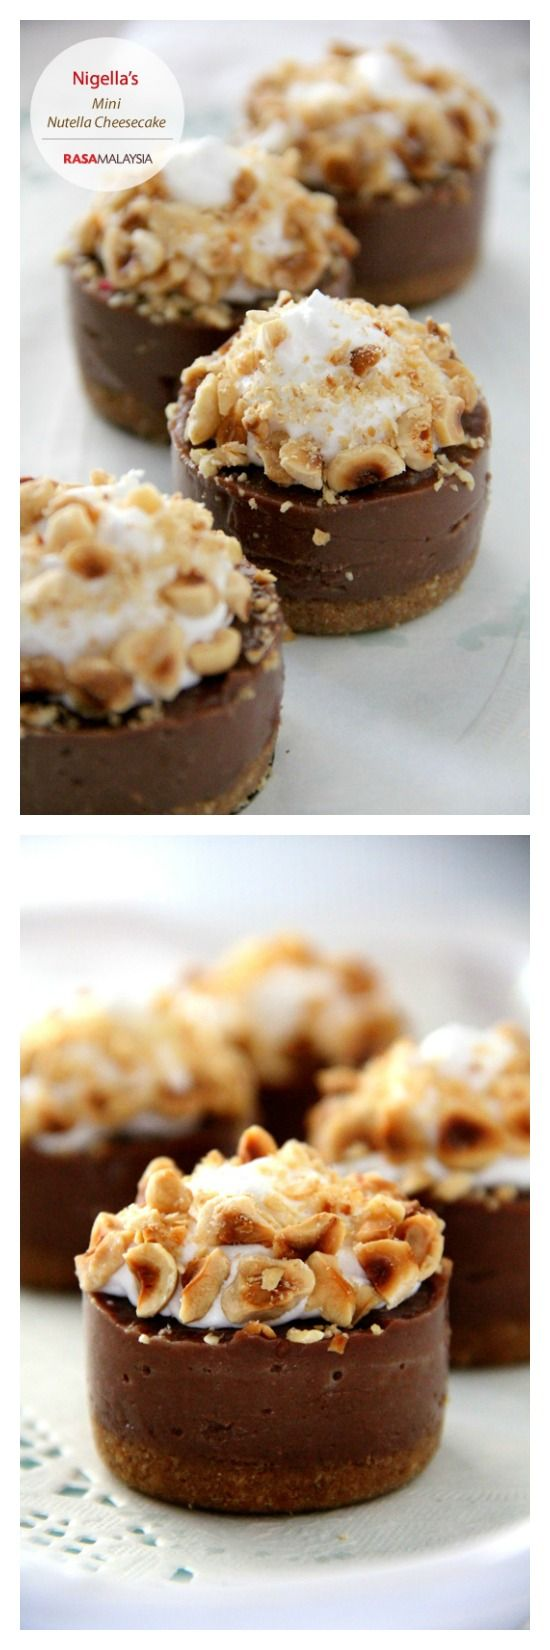 No Bake Mini Nutella Cheesecake with toasted hazelnuts, easy recipe that yields sinfully decadent cheesecake | rasamalaysia.com